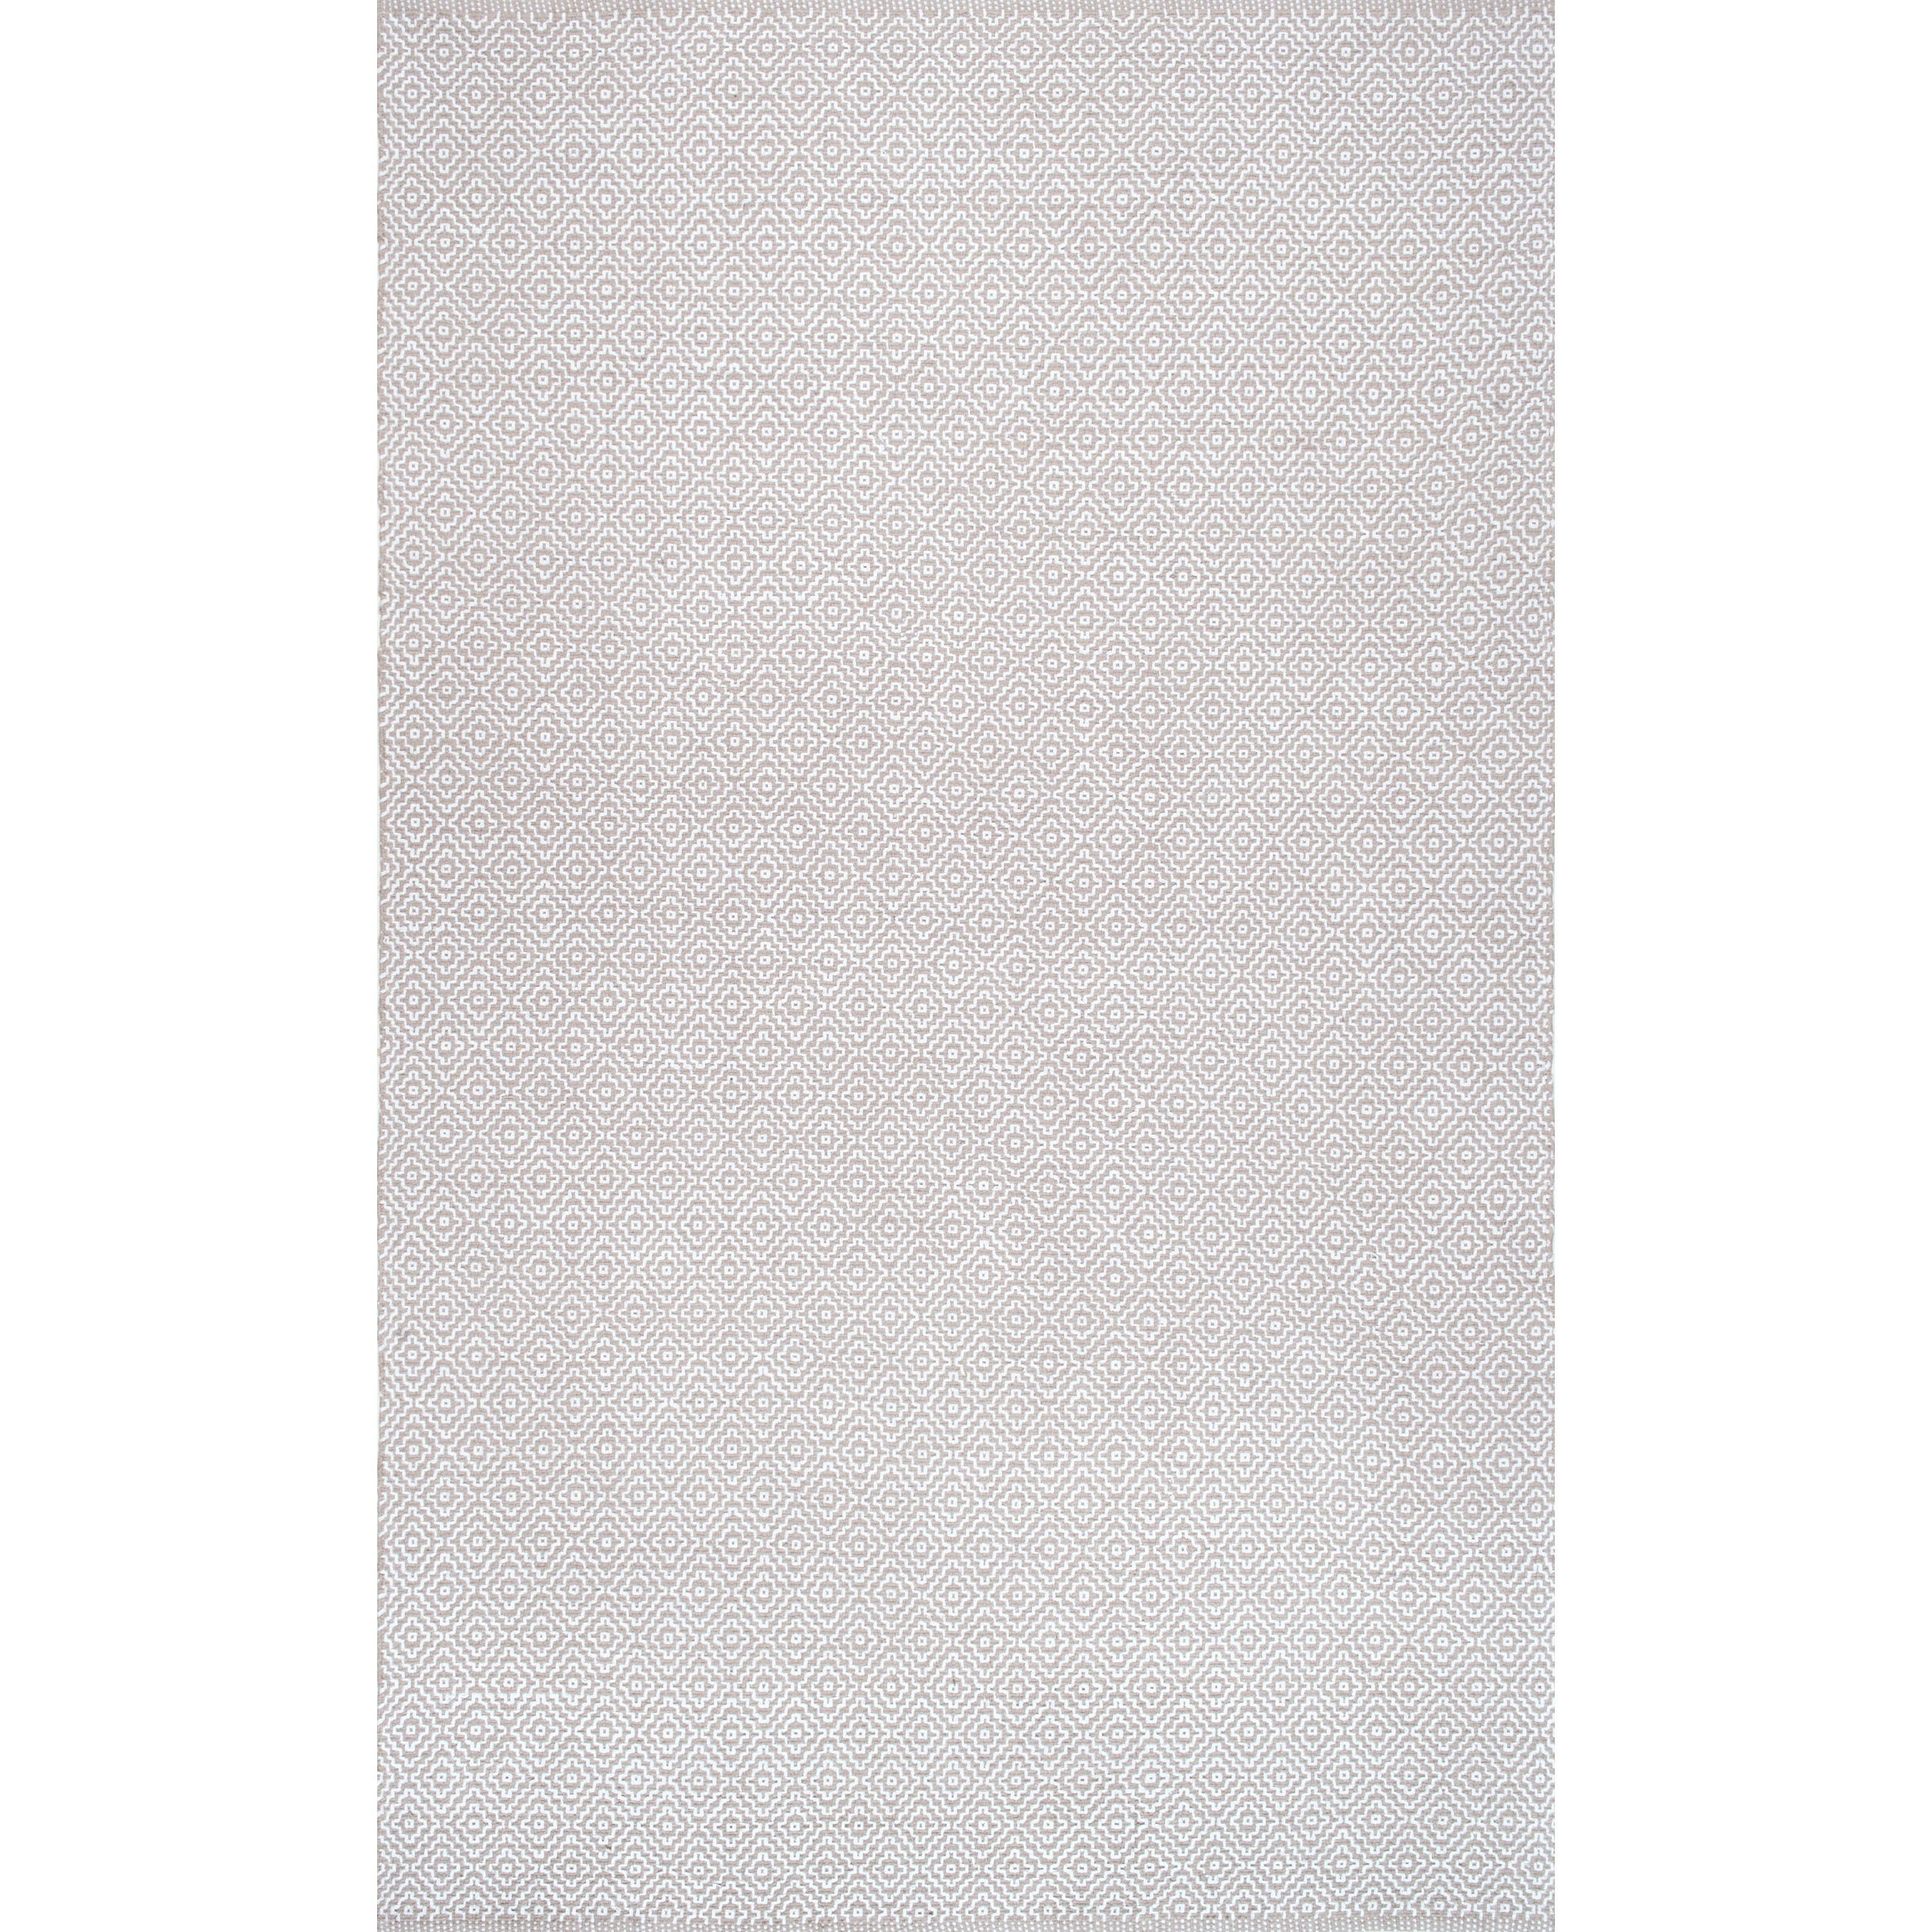 Nuloom Handmade Flatweave Diamond Cotton Rug 6 X 9 On Free Shipping Today 12185248